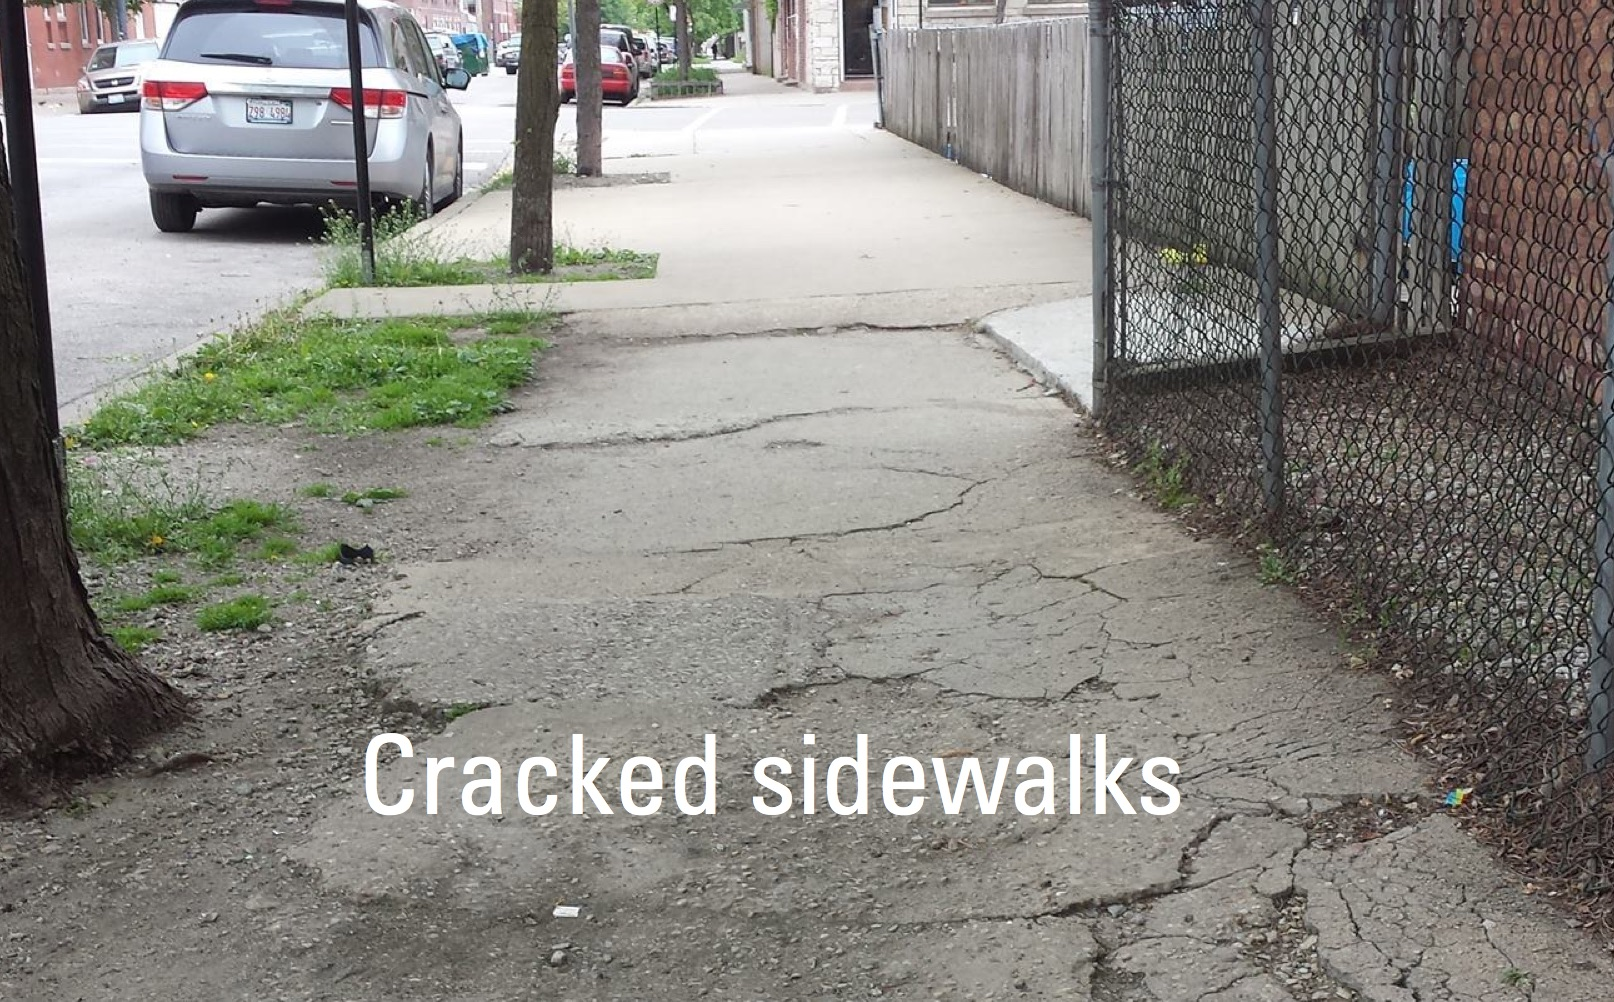 Cracked sidewalks